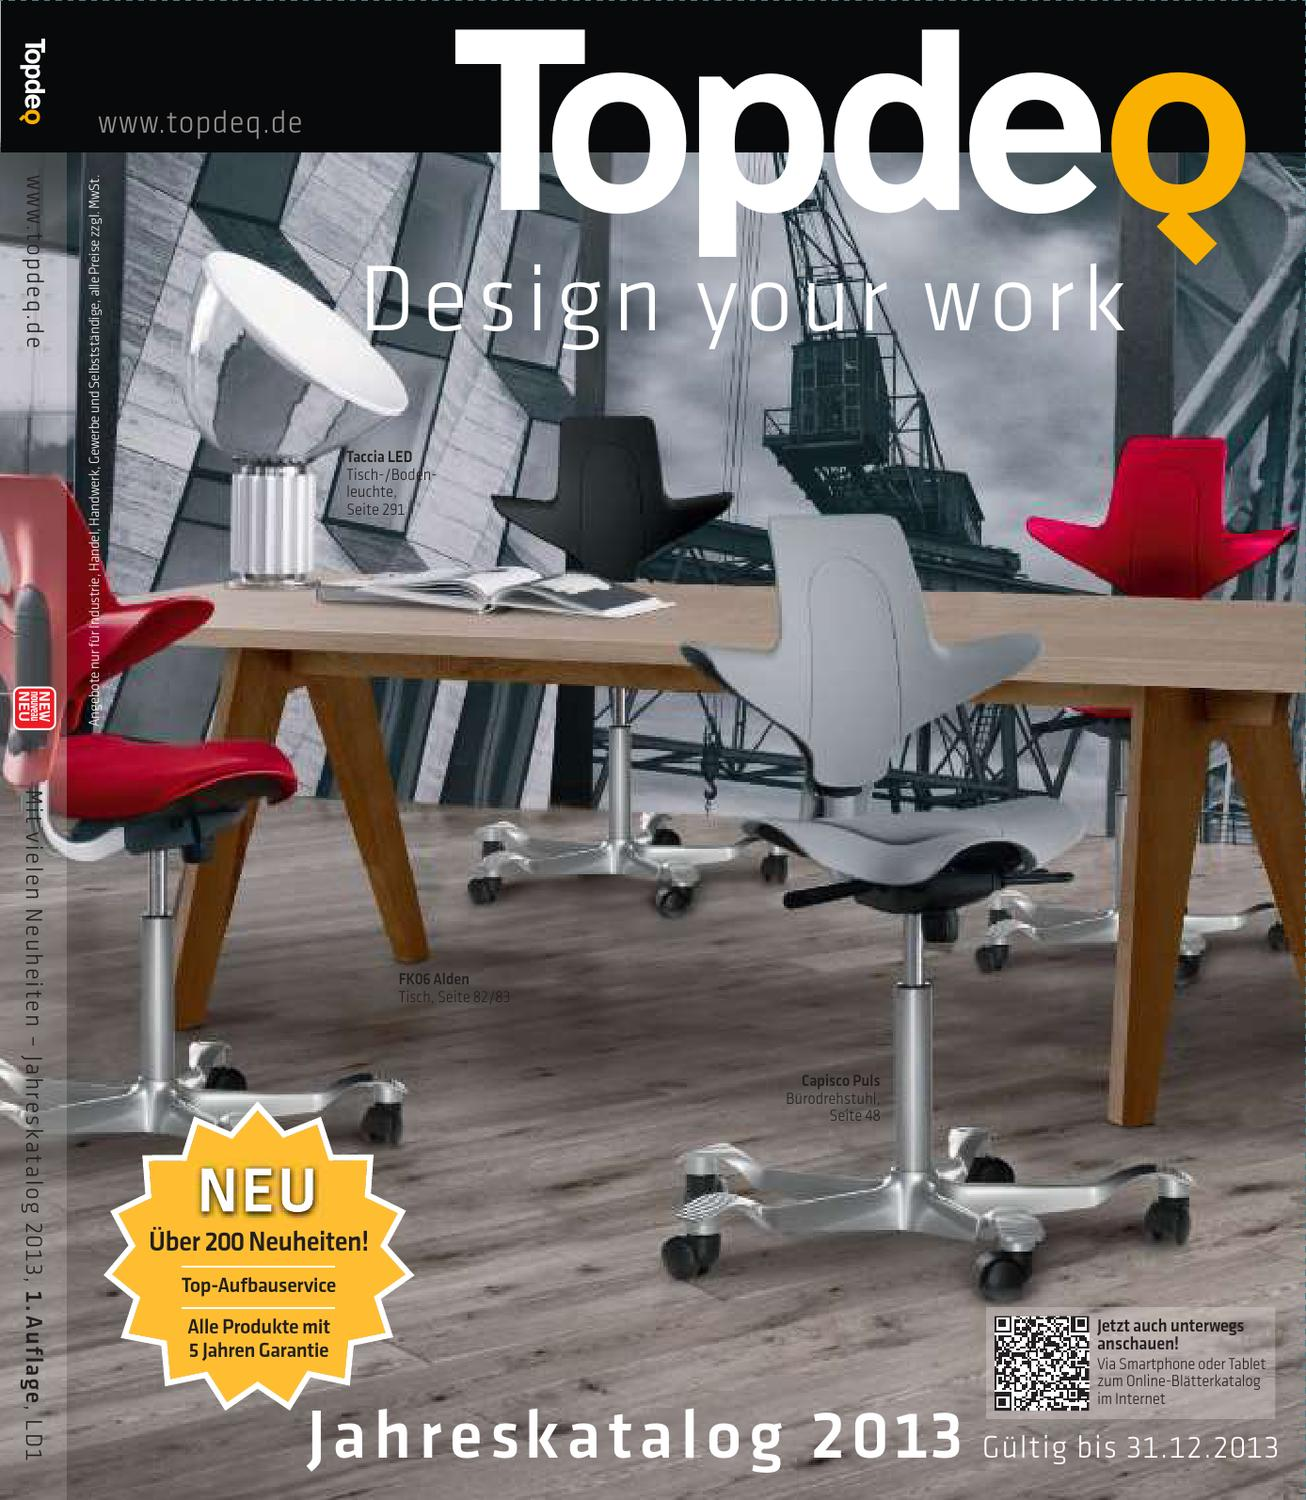 topdeq designmöbel katalog 2013 by topdeq design your work - issuu, Hause ideen